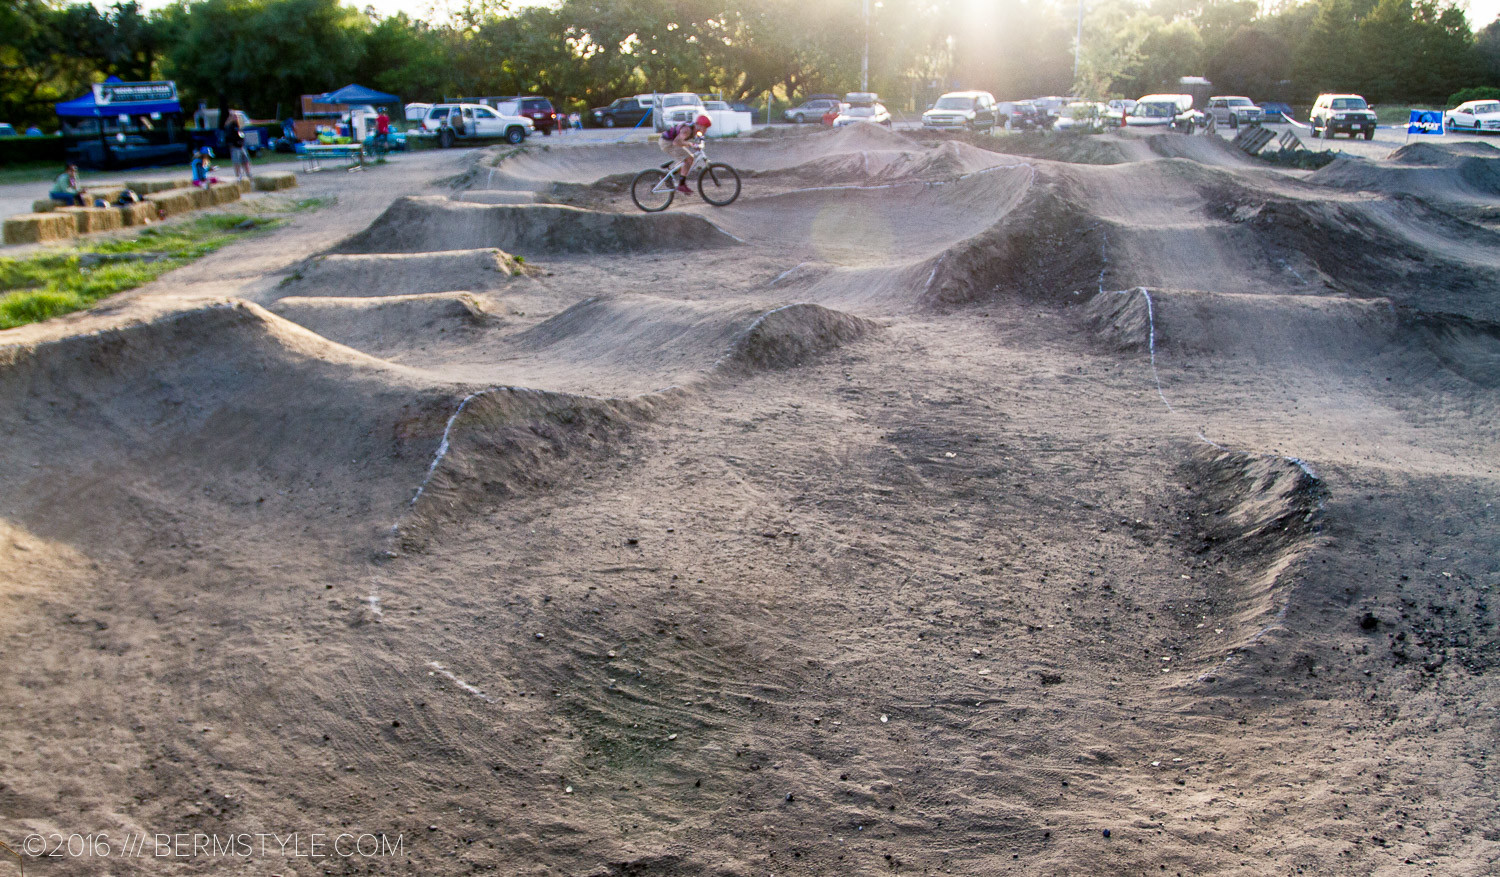 The Aptos Pump Track was a great example of a successful loop-style track. Incorporating alternative lines and features like table top jumps and camel humps in addition to rollers and bermed turns.